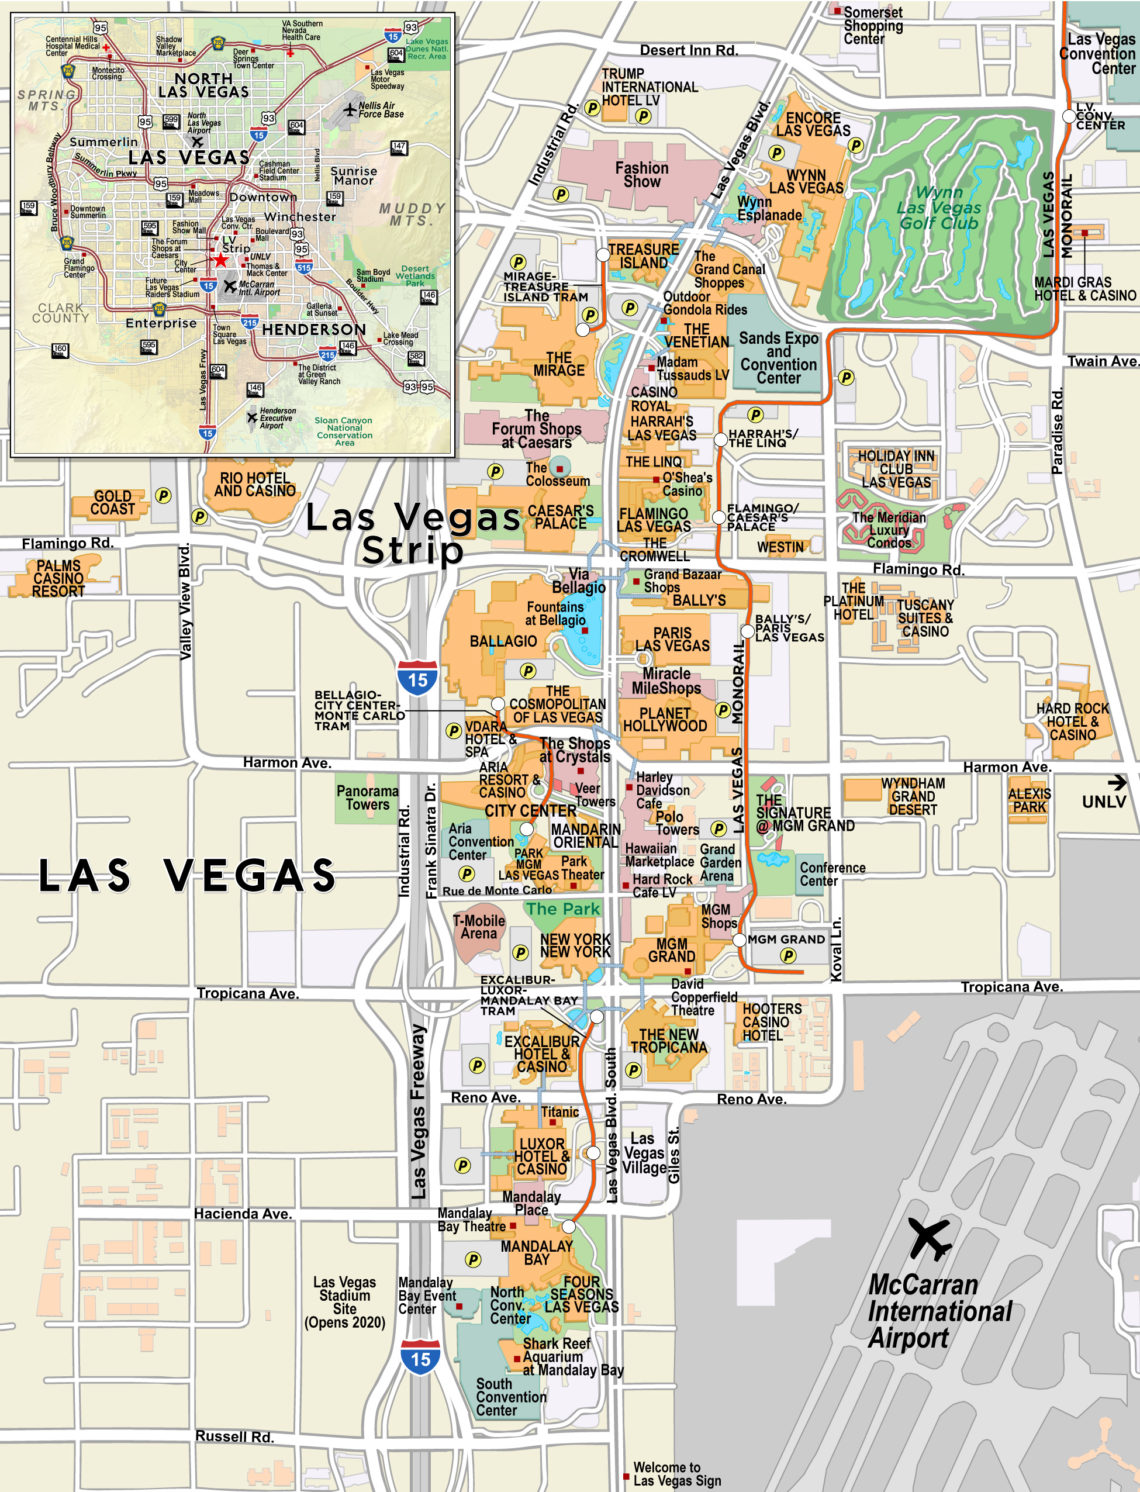 Las Vegas Strip Custom Map | Red Paw Technologies